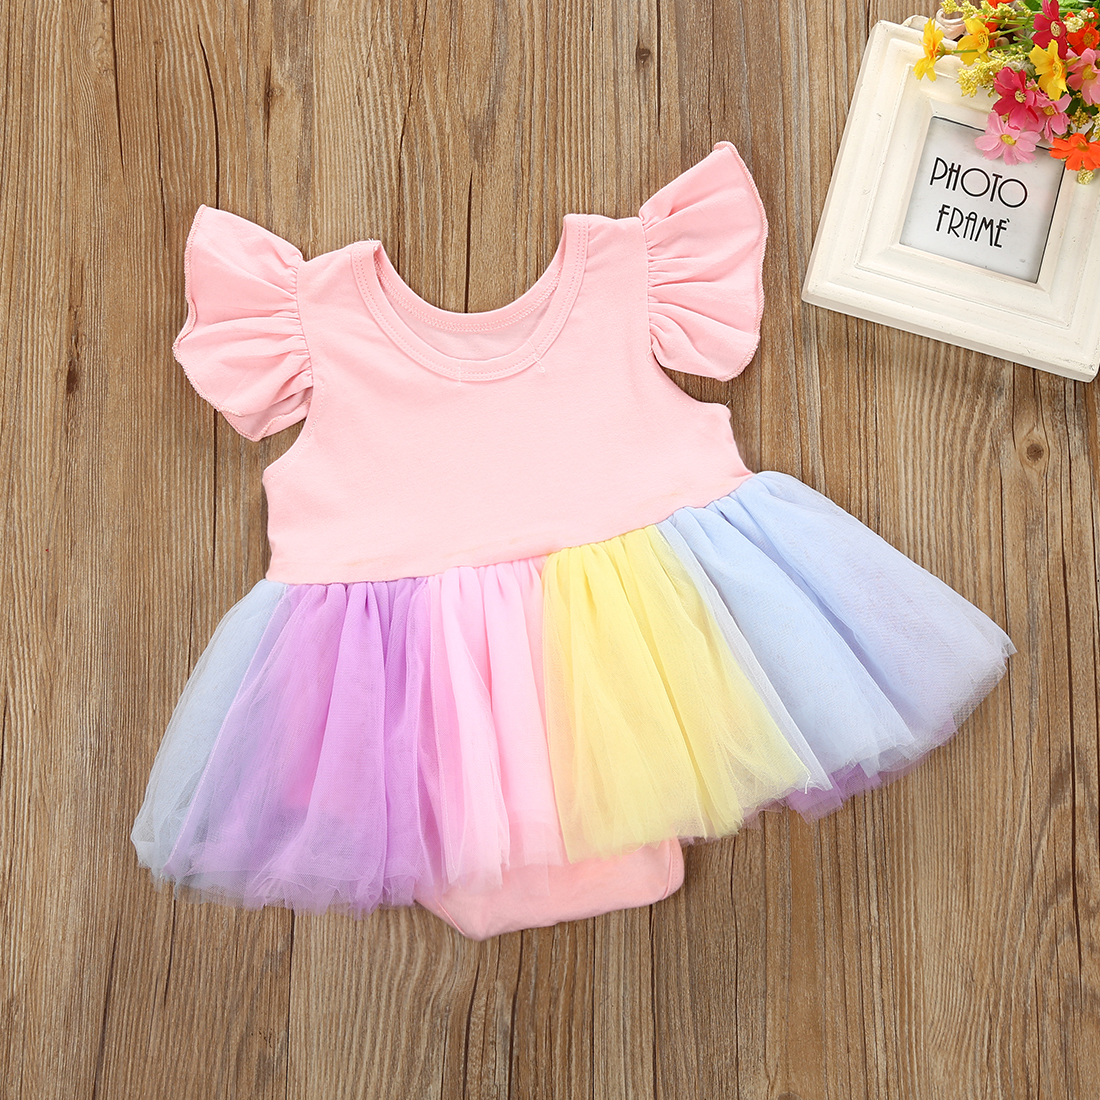 1c204e429d Newborn Toddler Baby Girls Unicorn Lace Tutu Bodysuit Ruffles Sleeve Mini Dress  Outfits Costume Size 0 24M-in Dresses from Mother & Kids on Aliexpress.com  ...